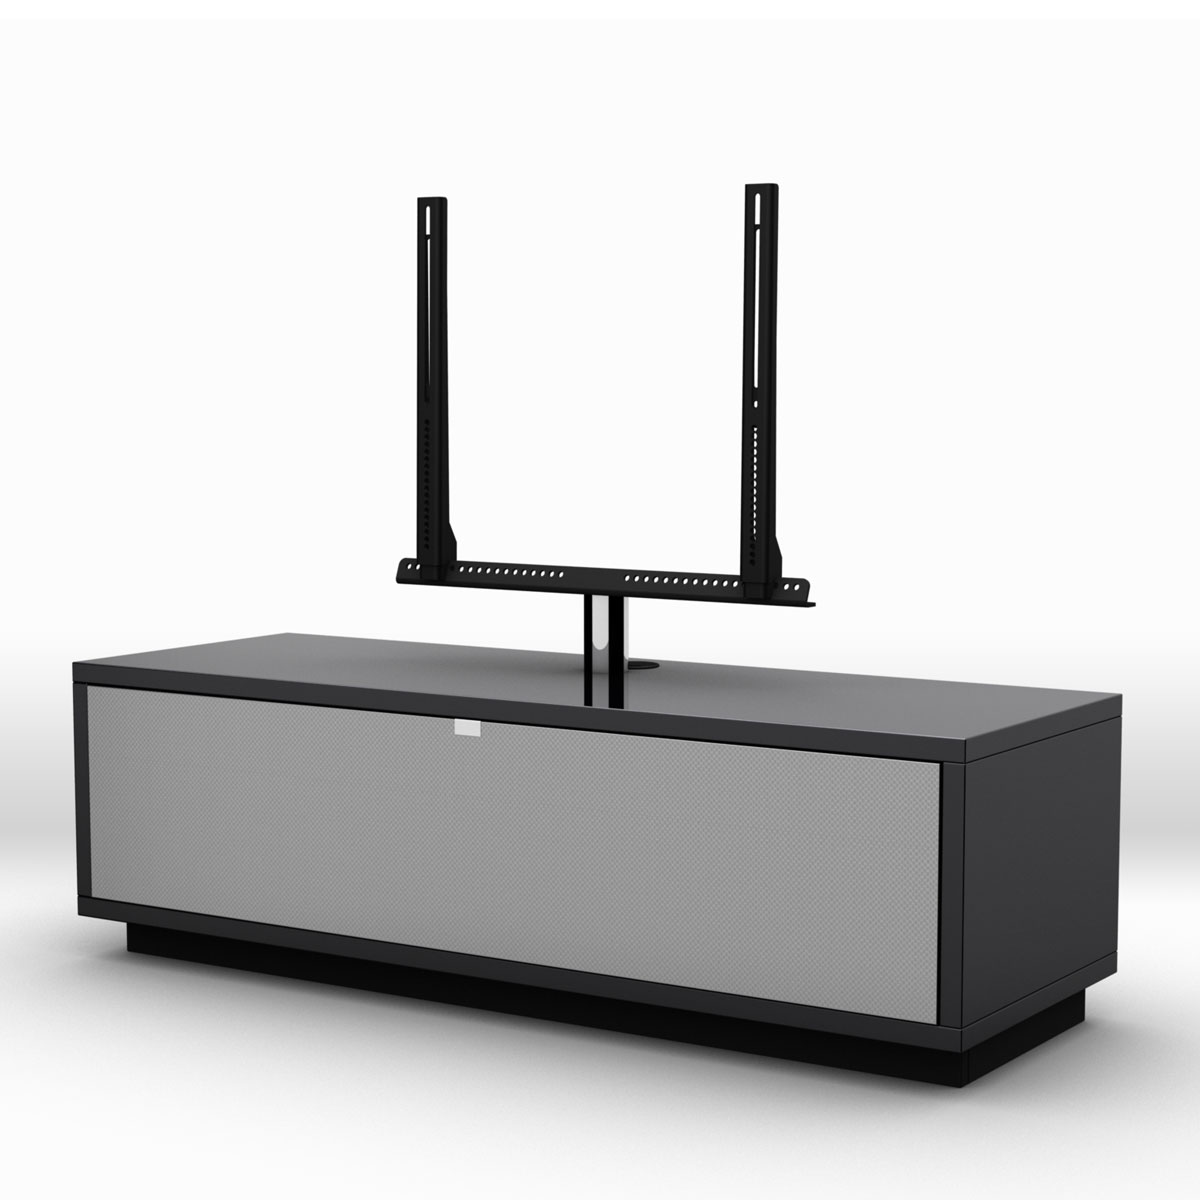 router schrank vergrern with router schrank best gengt die reichweite ihres wlanrouters nicht. Black Bedroom Furniture Sets. Home Design Ideas